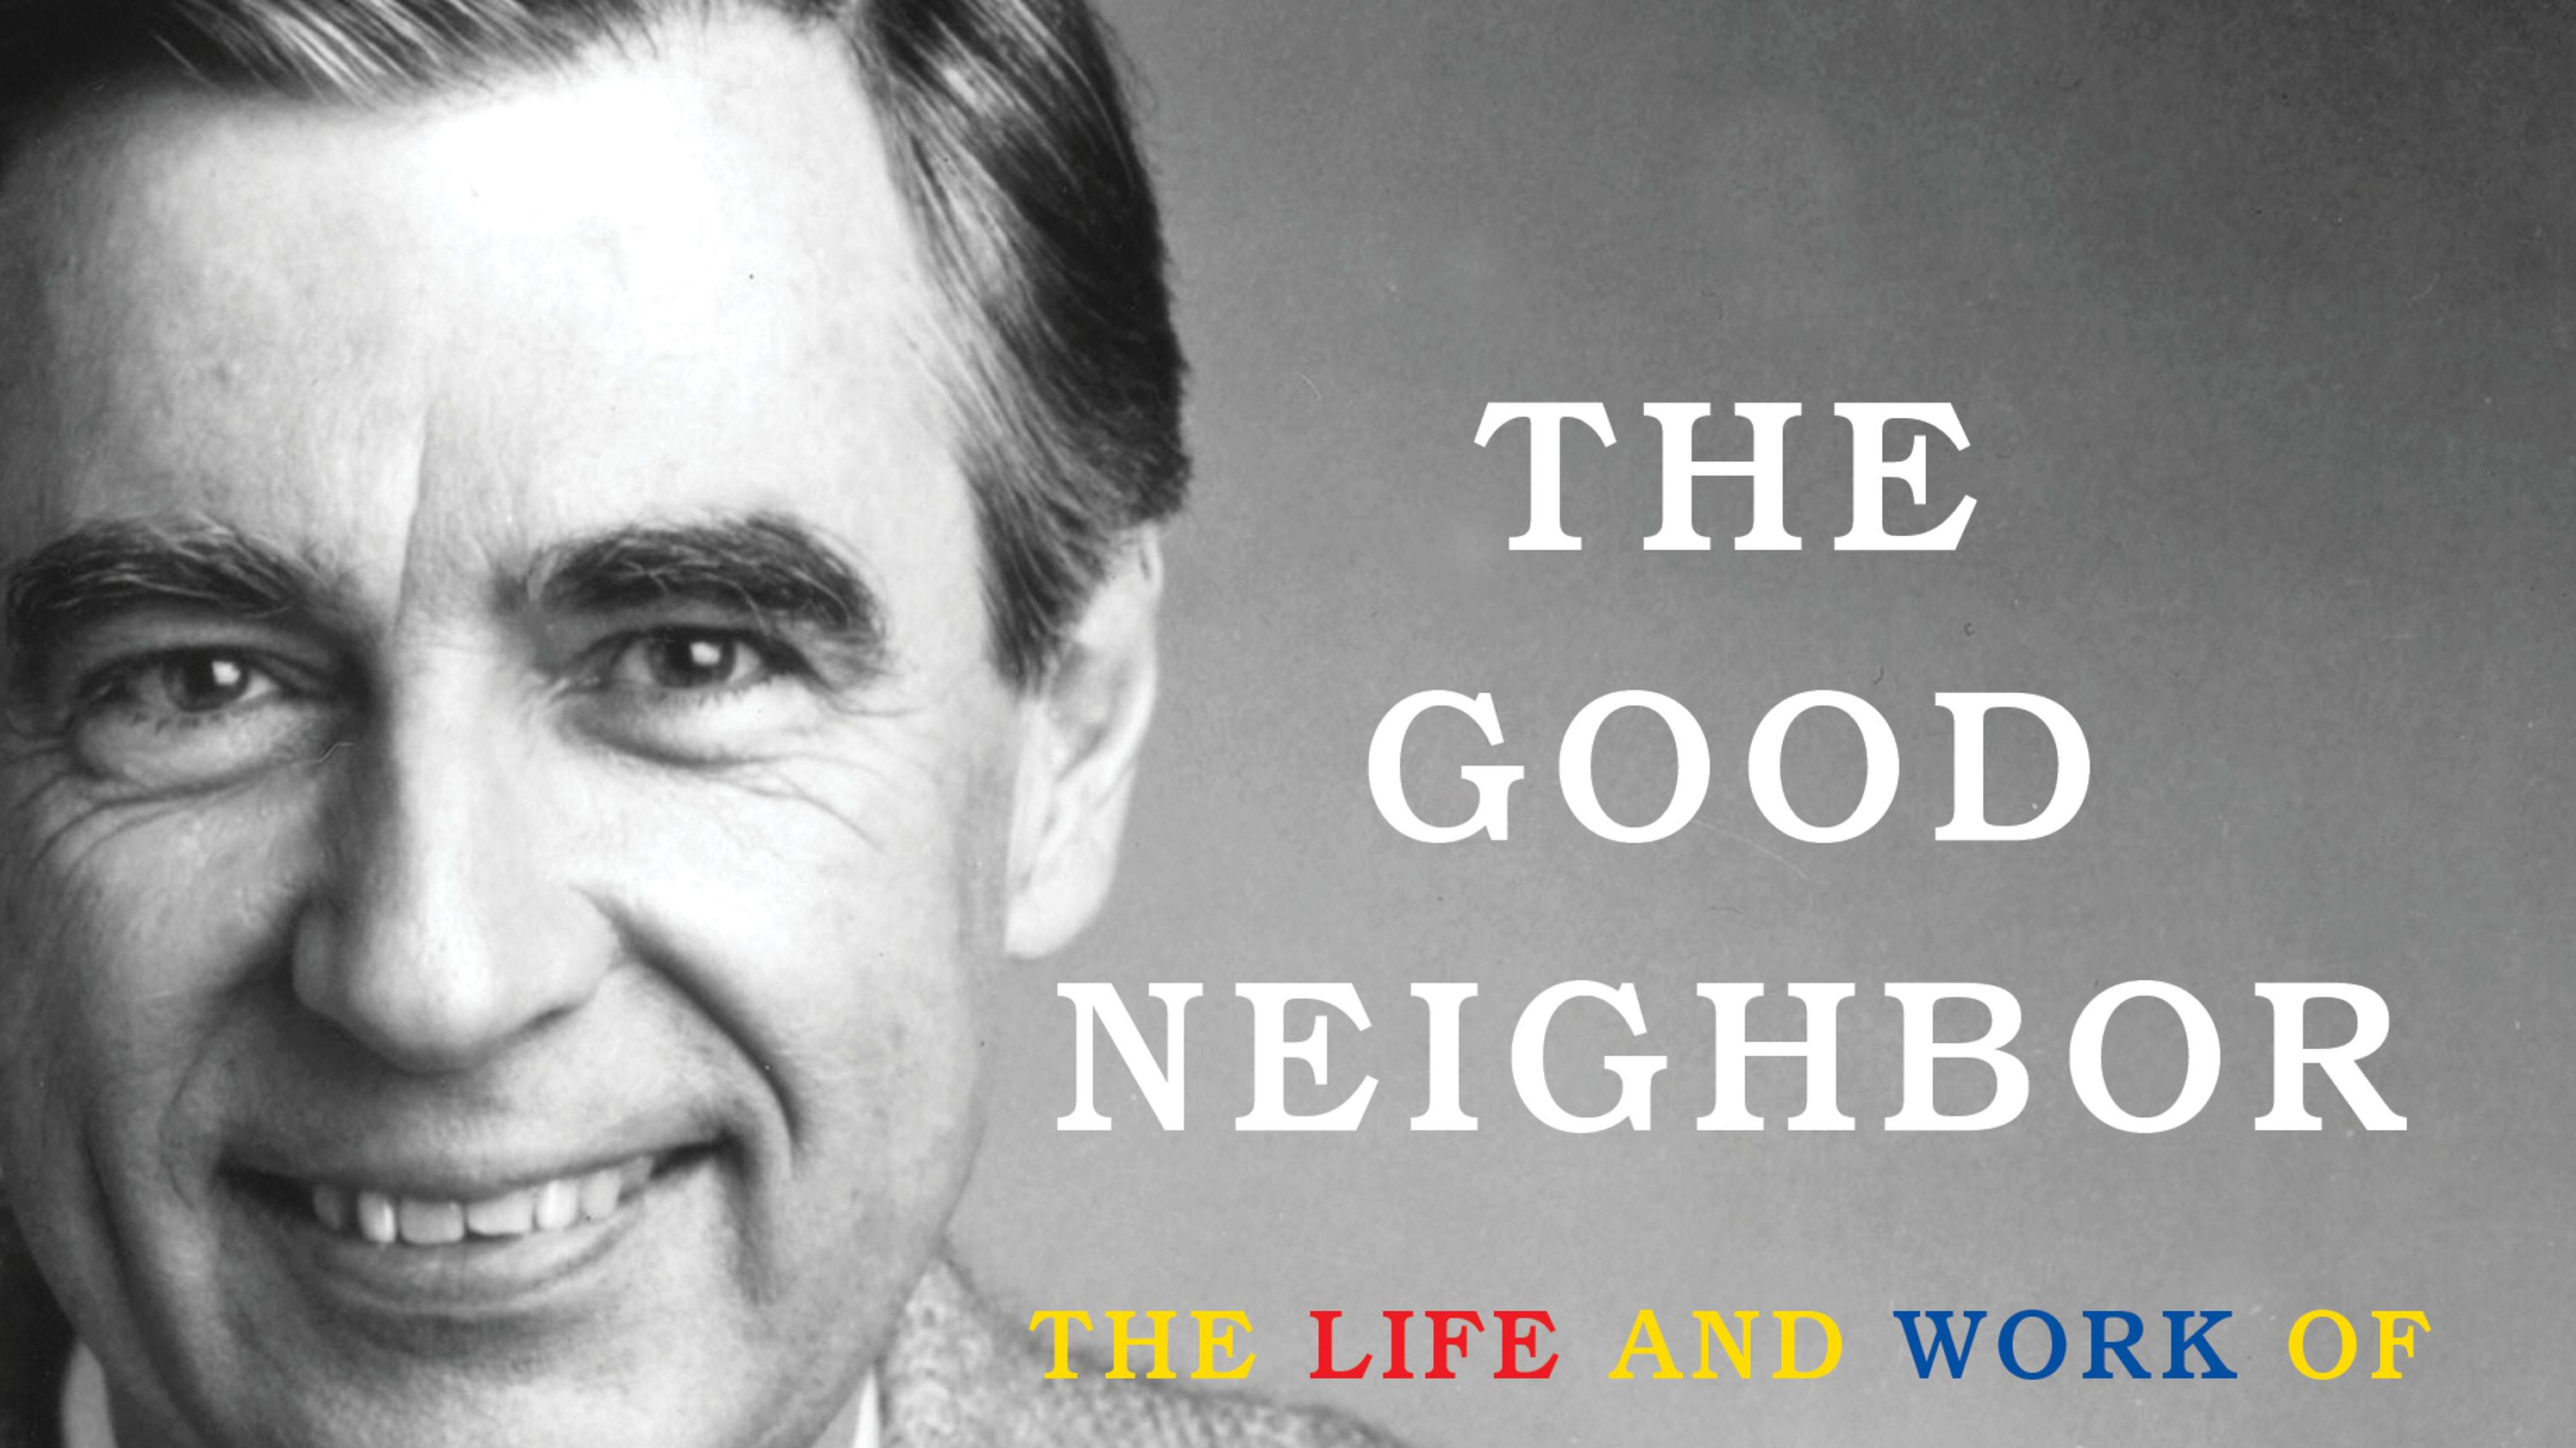 5 beautiful things we learn about Mister Rogers from new